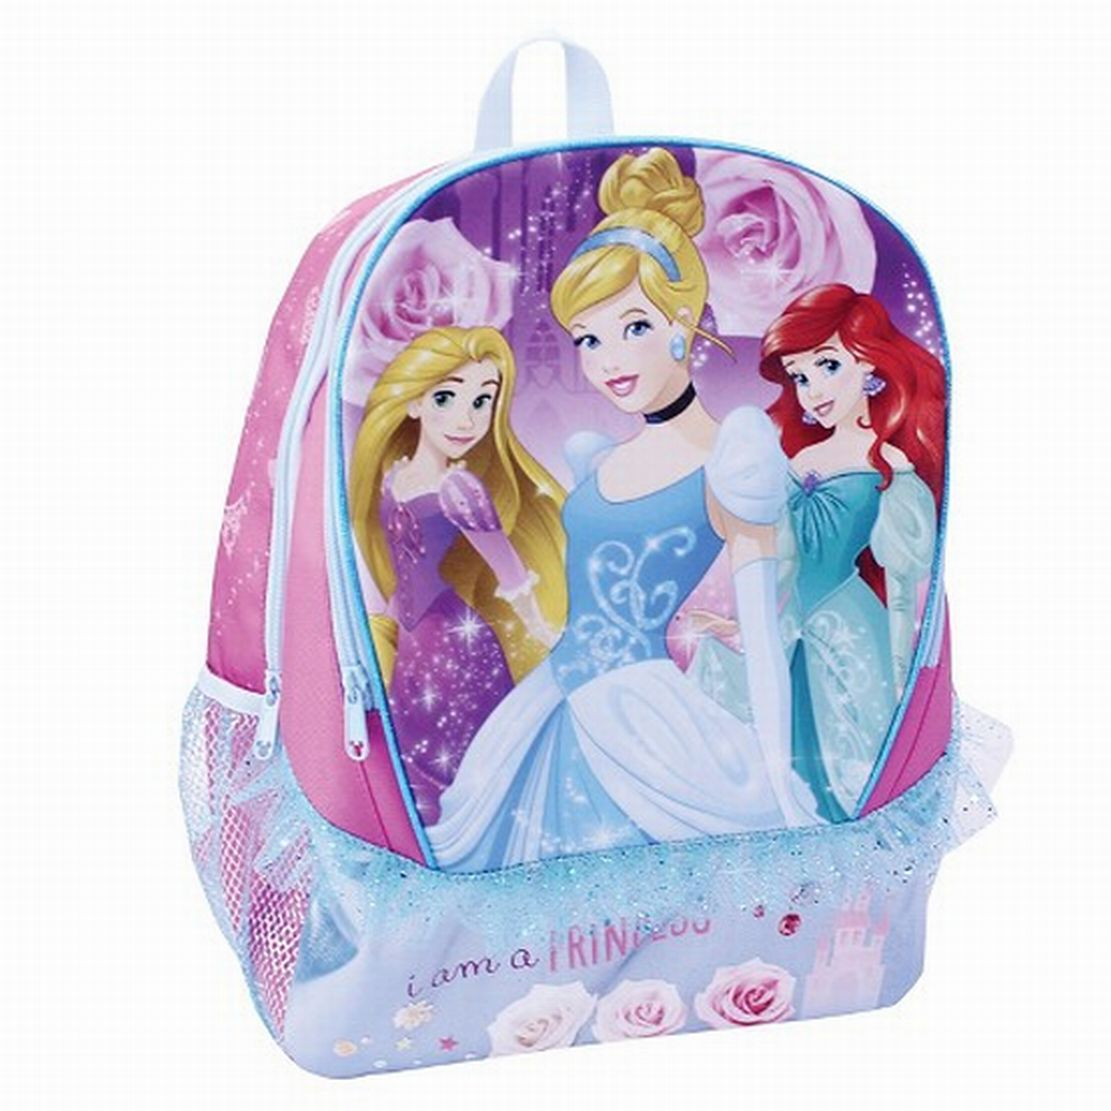 2372bb99d6b Disney princess ariel cinderella backpack kids jpg 450x450 School disney  princess ariel